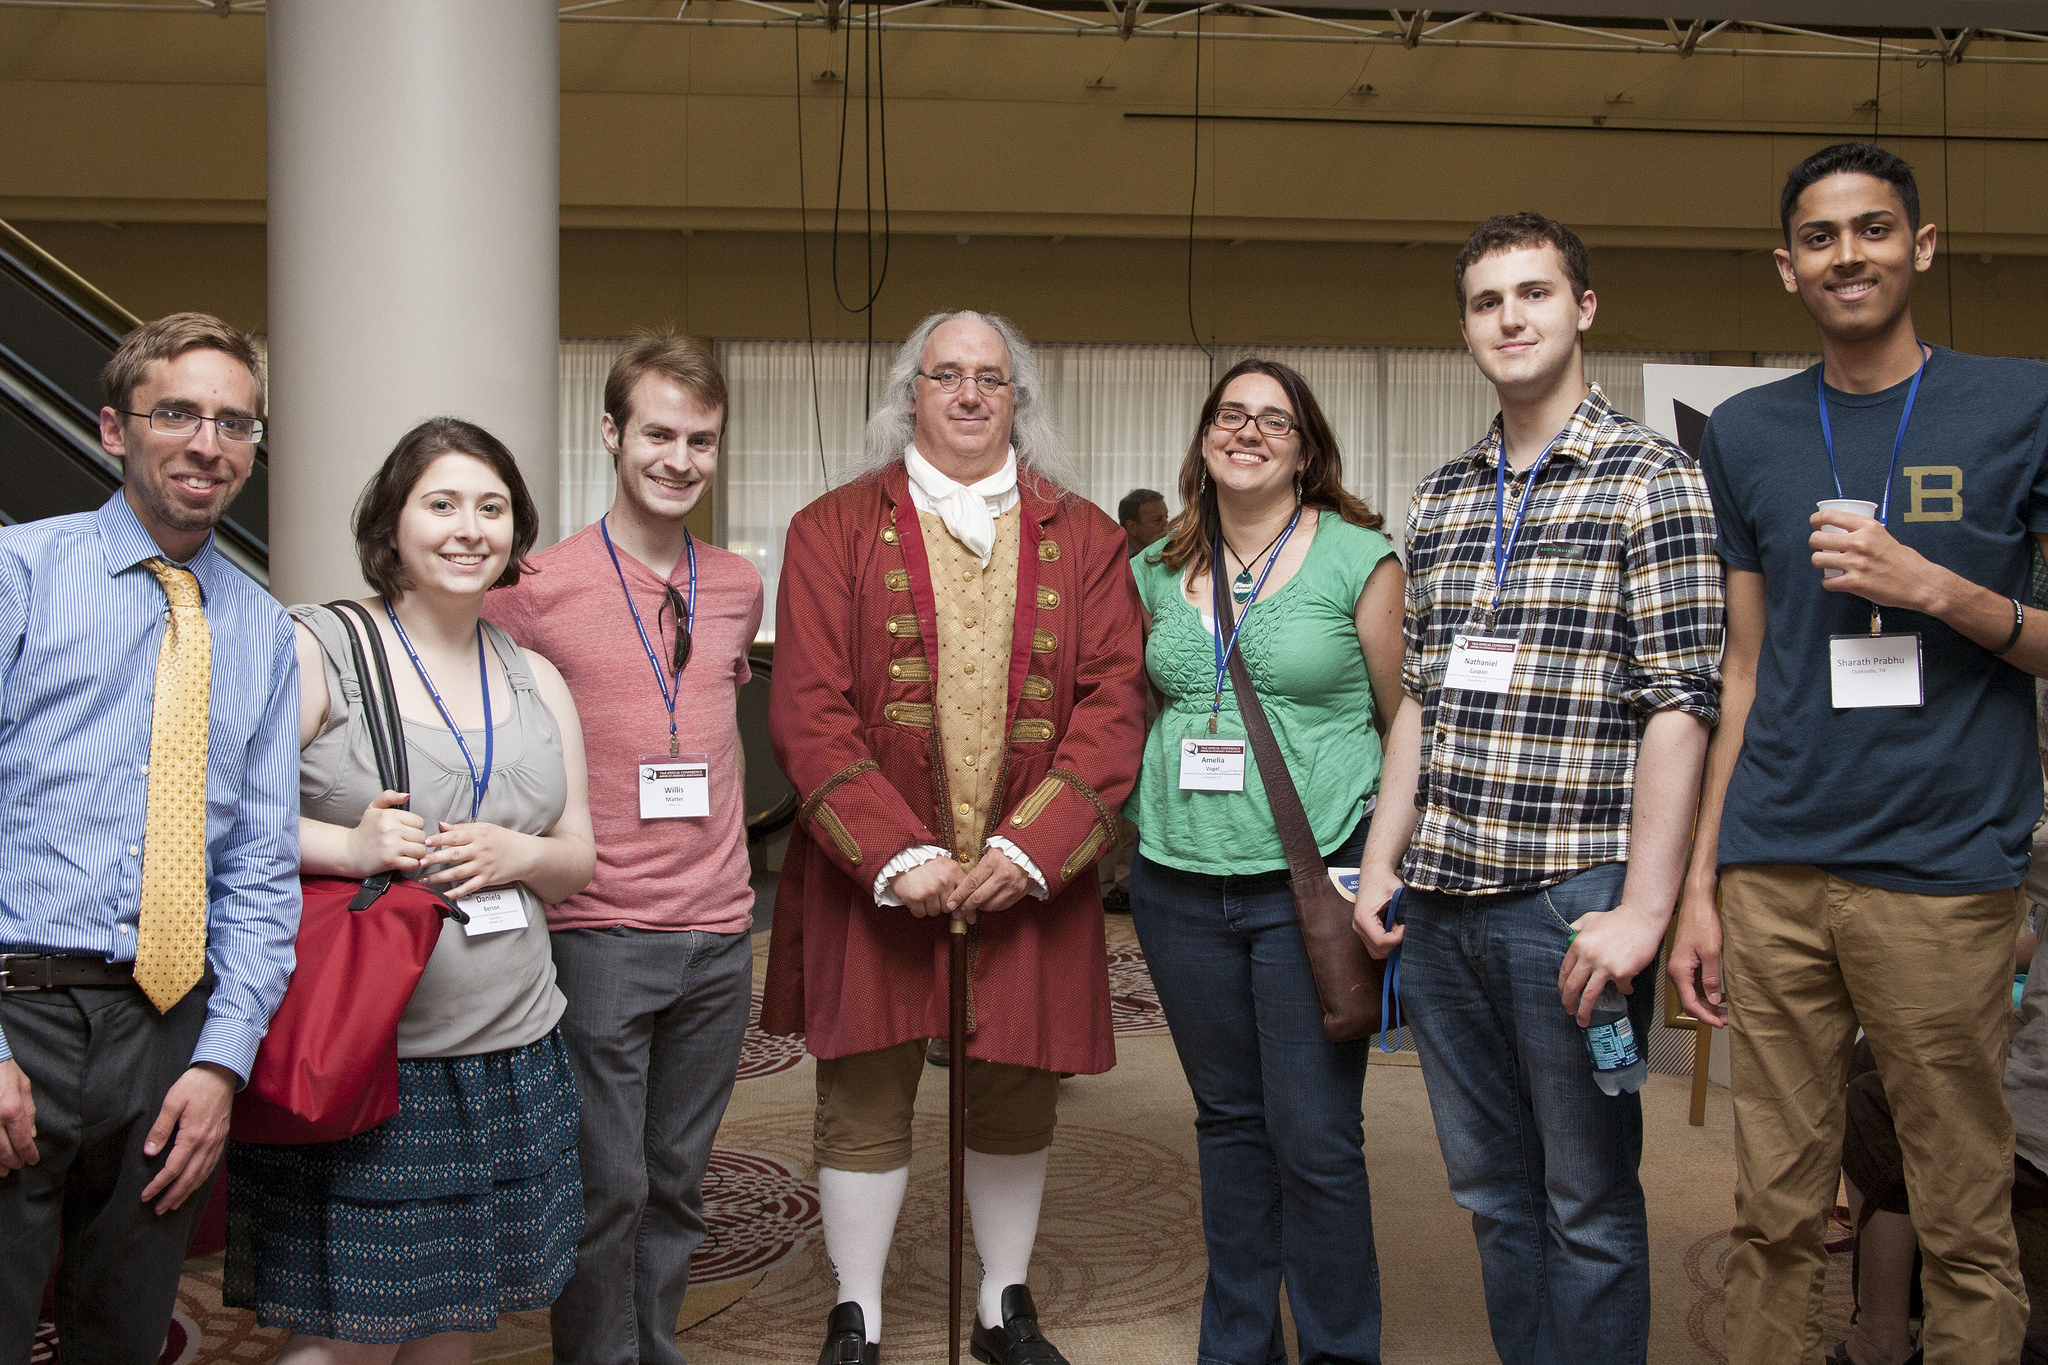 Benjamin Franklin & conference attendees